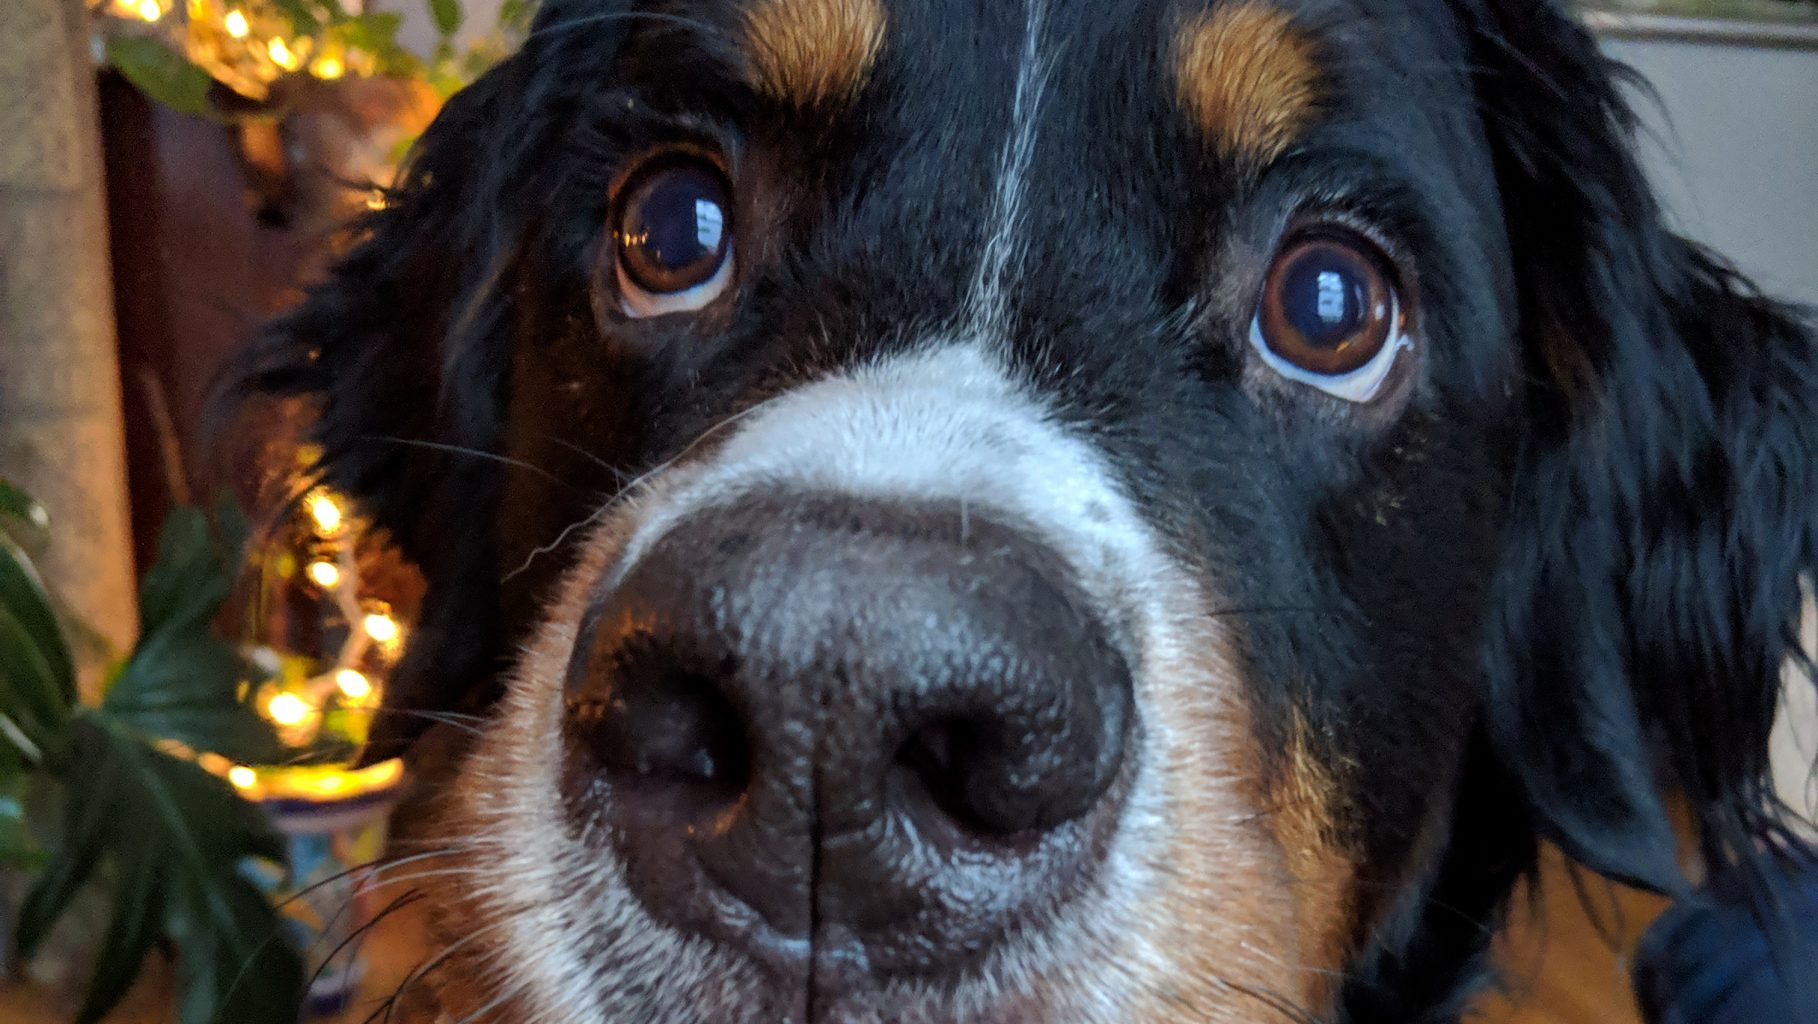 Image: Close up of a dog nose with eyes looking up